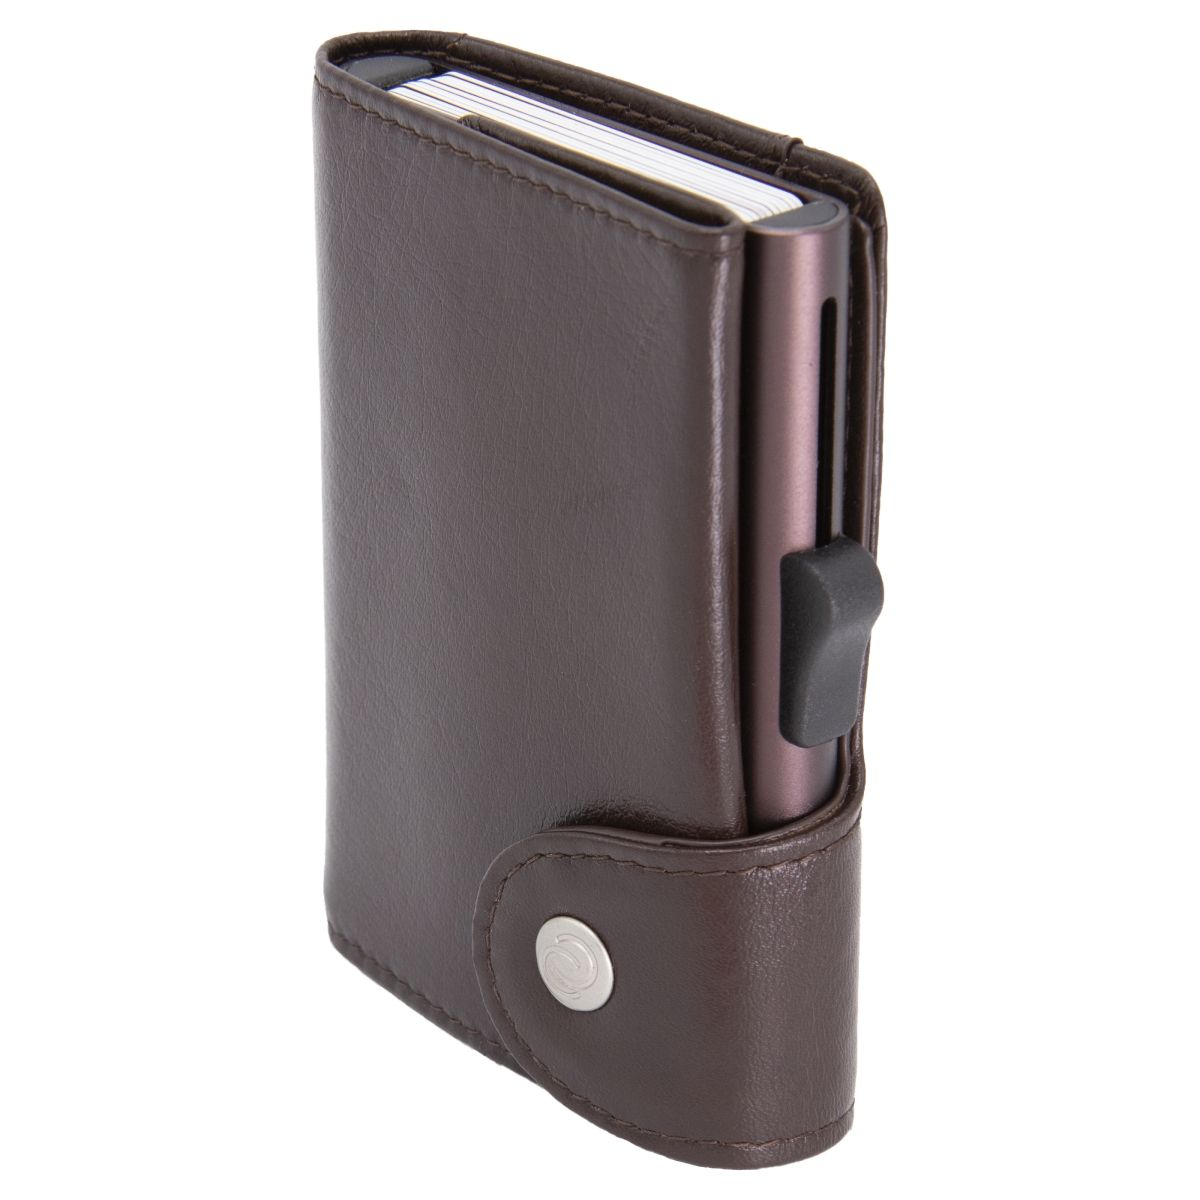 C-Secure XL Aluminum Wallet with Genuine Leather - Mogano Brown